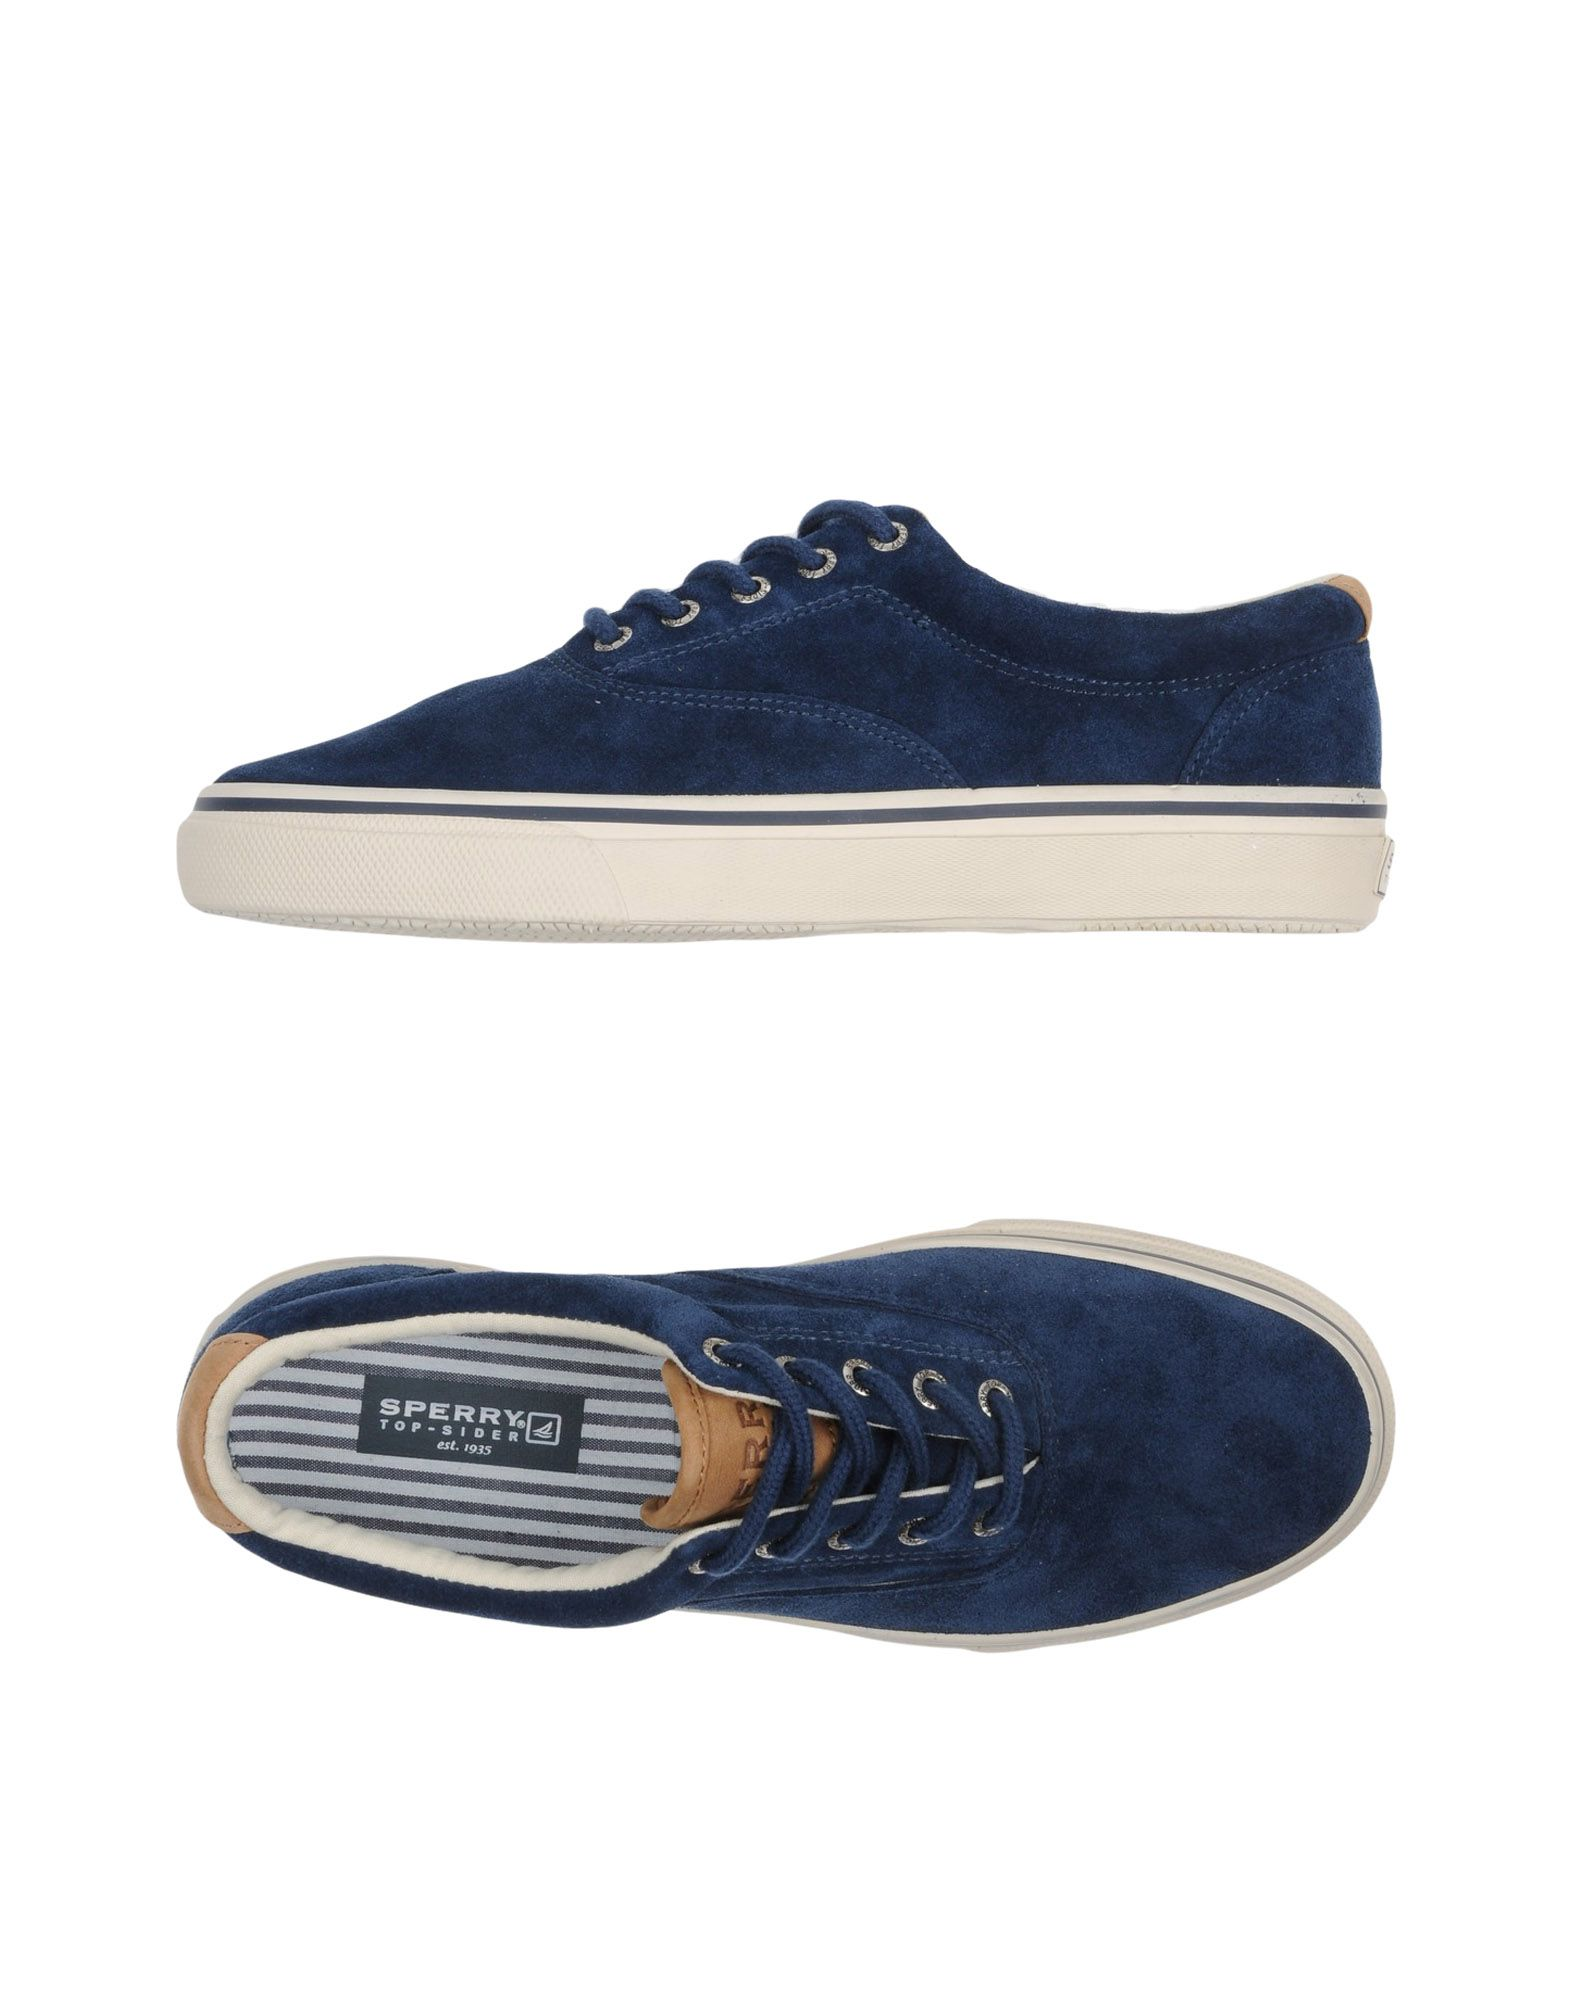 Sneakers Sperry Top-Sider Uomo - 11242588GI